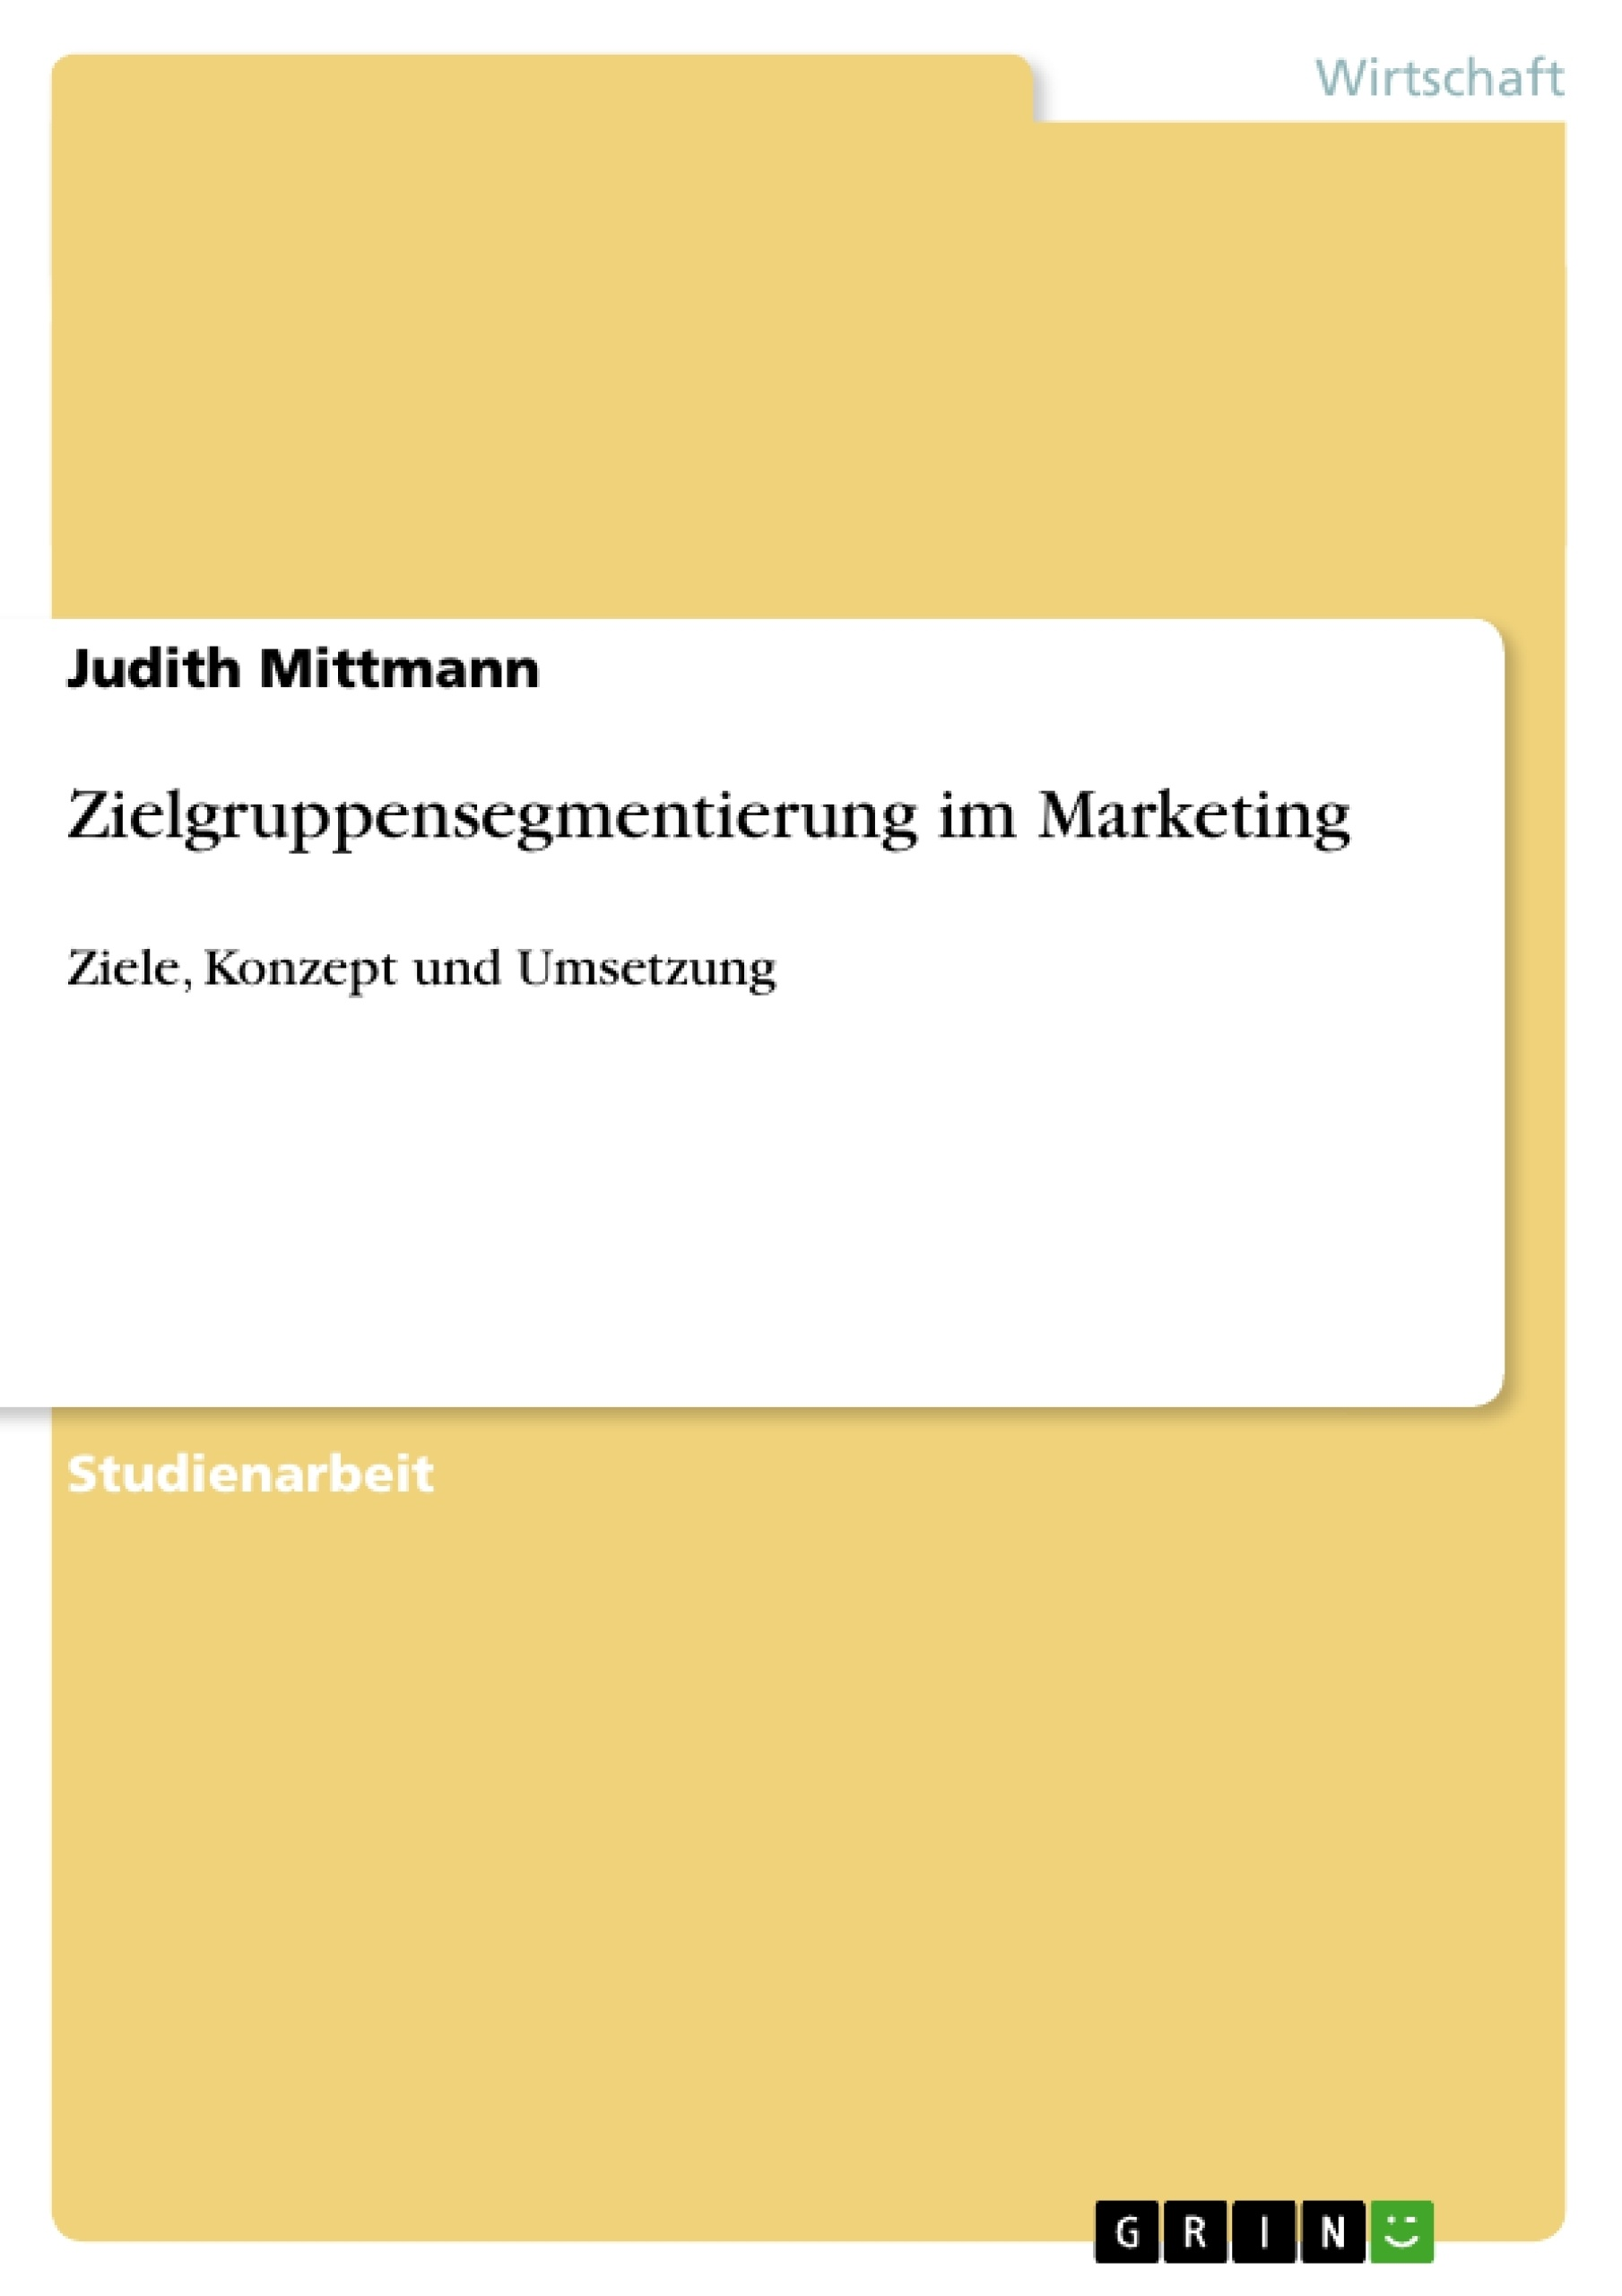 Titel: Zielgruppensegmentierung im Marketing